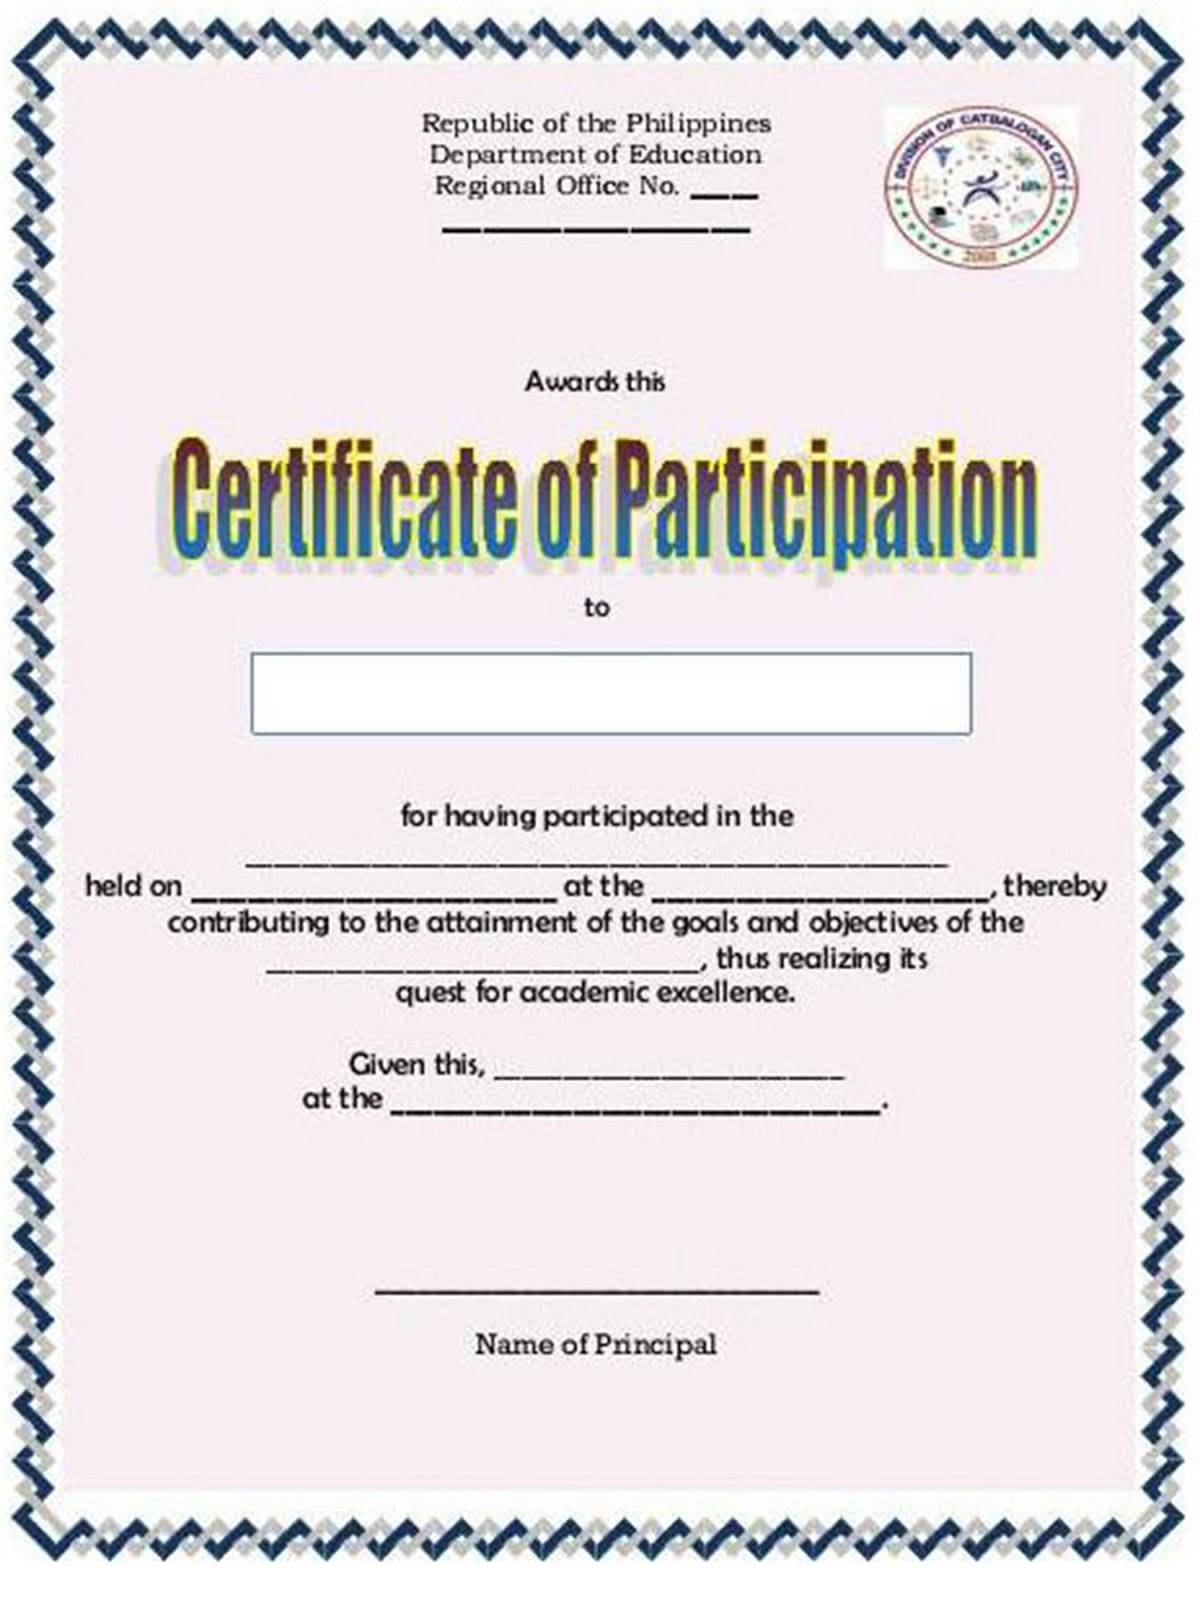 certification of participation free template - educational tips and product reviews sample certificate